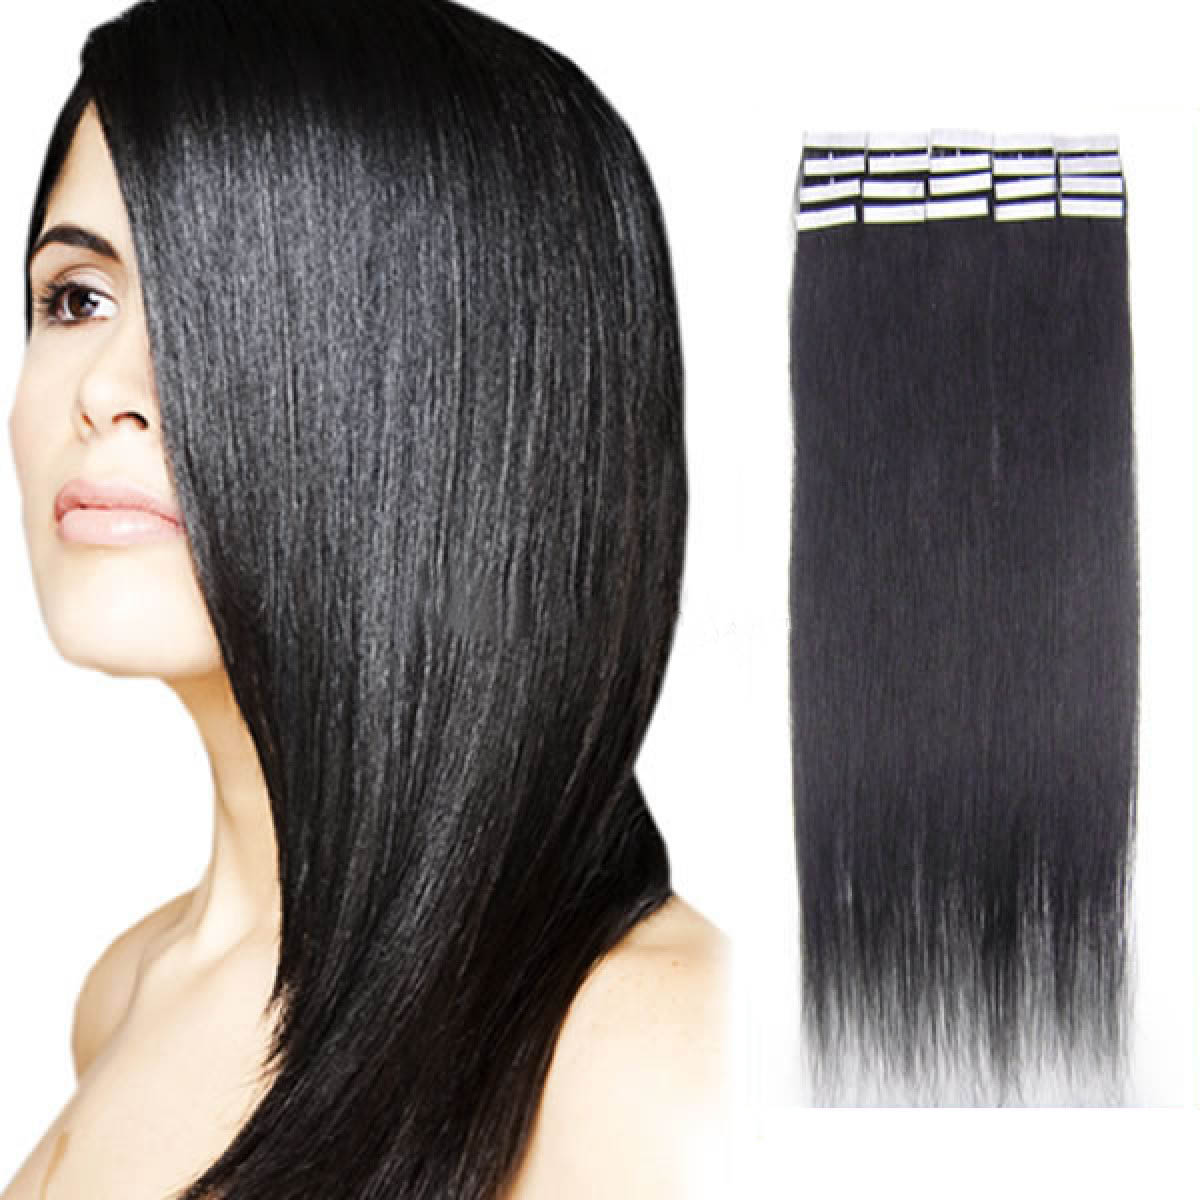 Inch 1b natural black tape in human hair extensions 20pcs 16 inch 1b natural black tape in human hair extensions 20pcs pmusecretfo Gallery